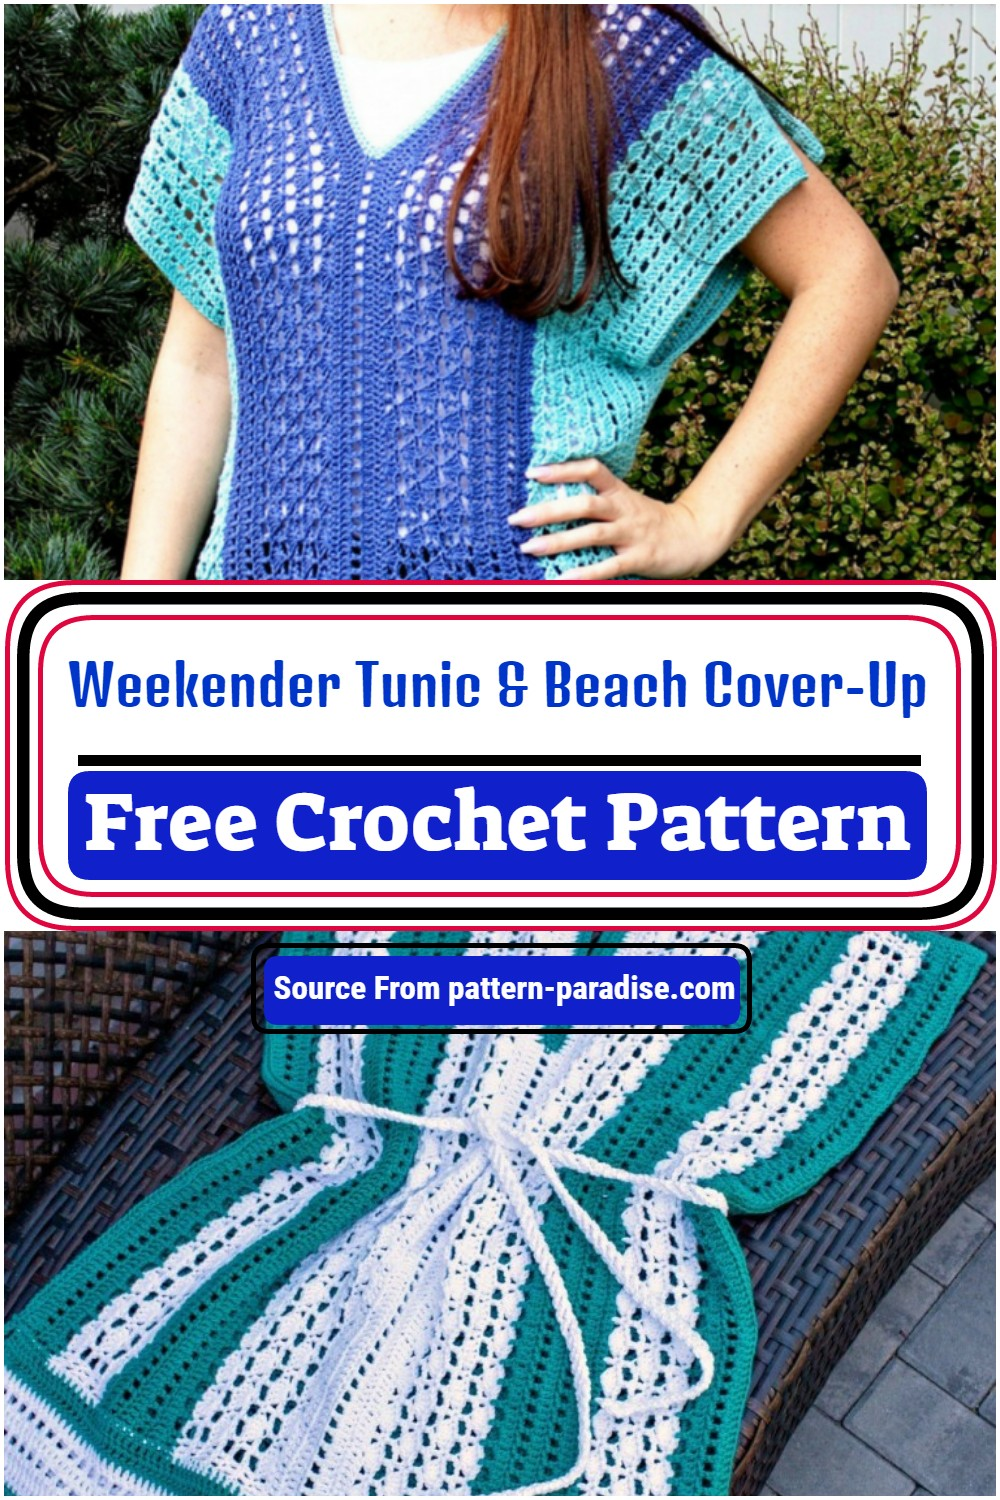 Weekender Tunic & Beach Cover-Up Pattern